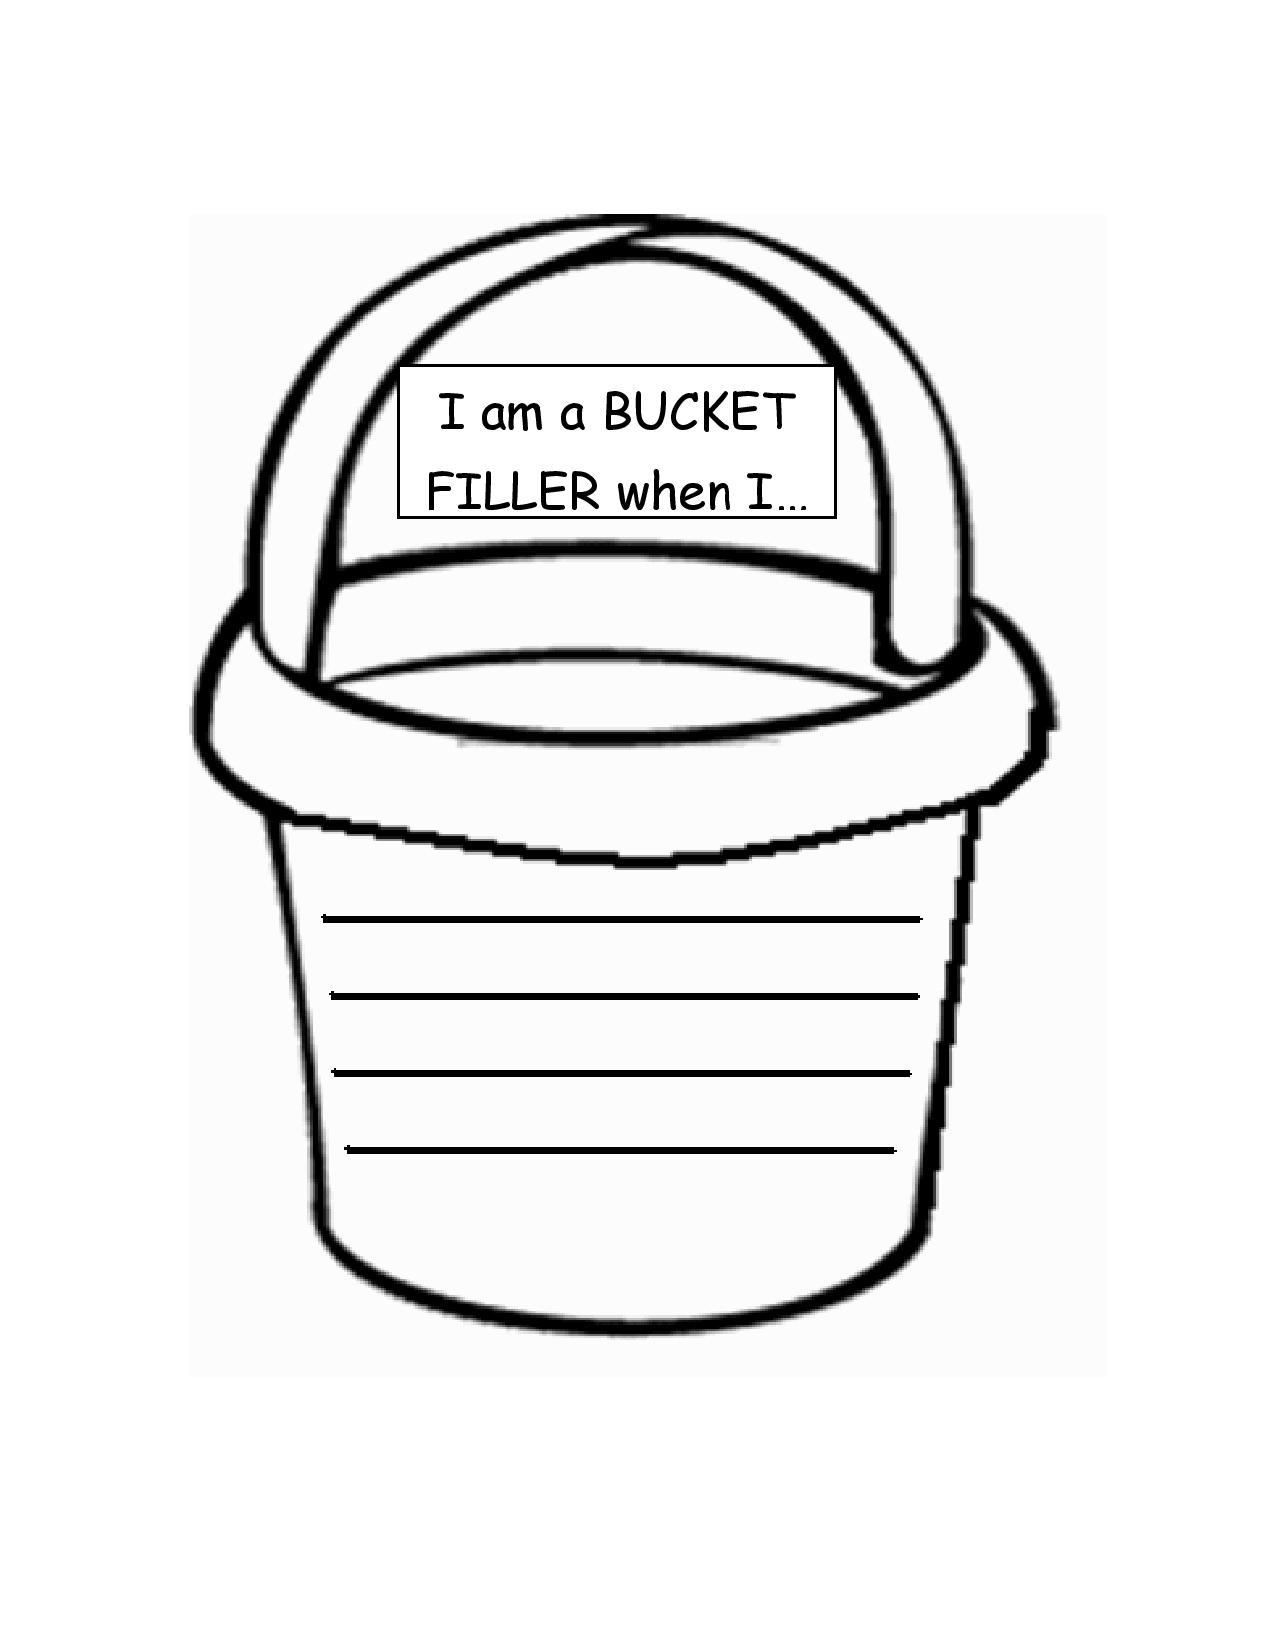 6 Images of Bucket Filler Template Printable